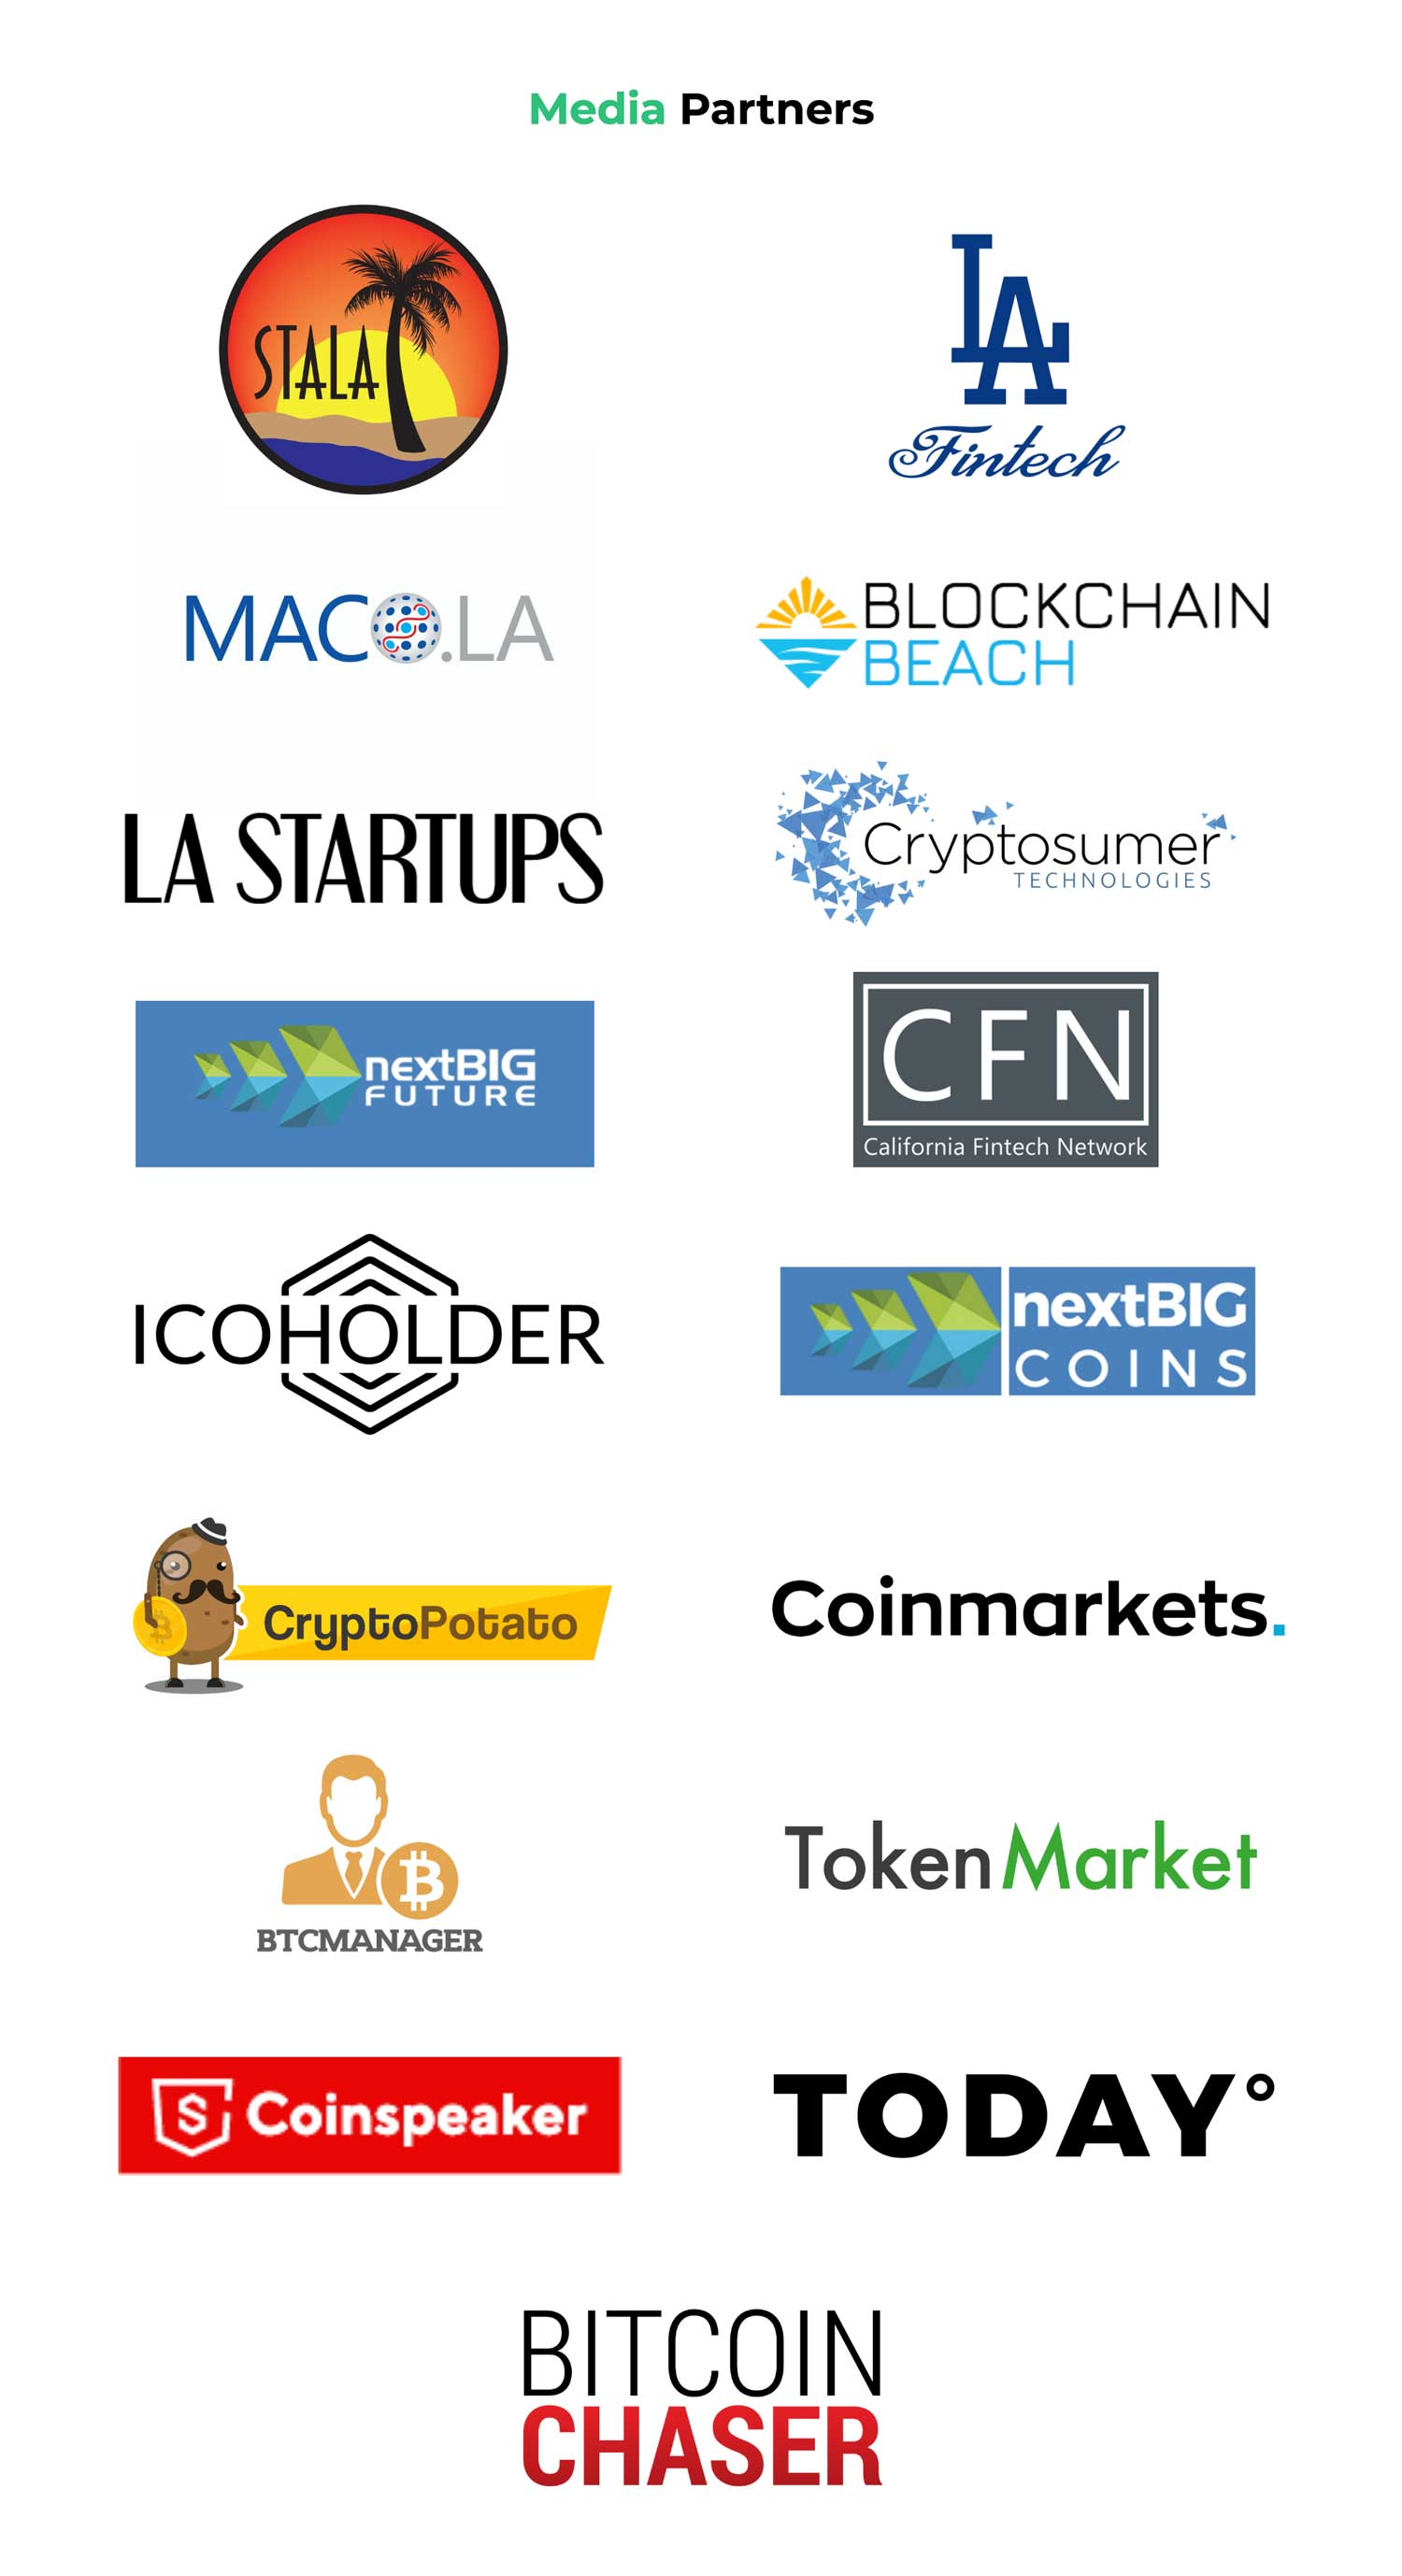 StartEngine is working with media partners like BTC manager, U.Today, LA Fintech, Blockchain Beach, LA Startups, Cryptosumer, California Fintech, ICO Holder, CoinsMarket, Crypto Potato, CoinSpeaker, Token Market, Bitcoin Chaser, and more!